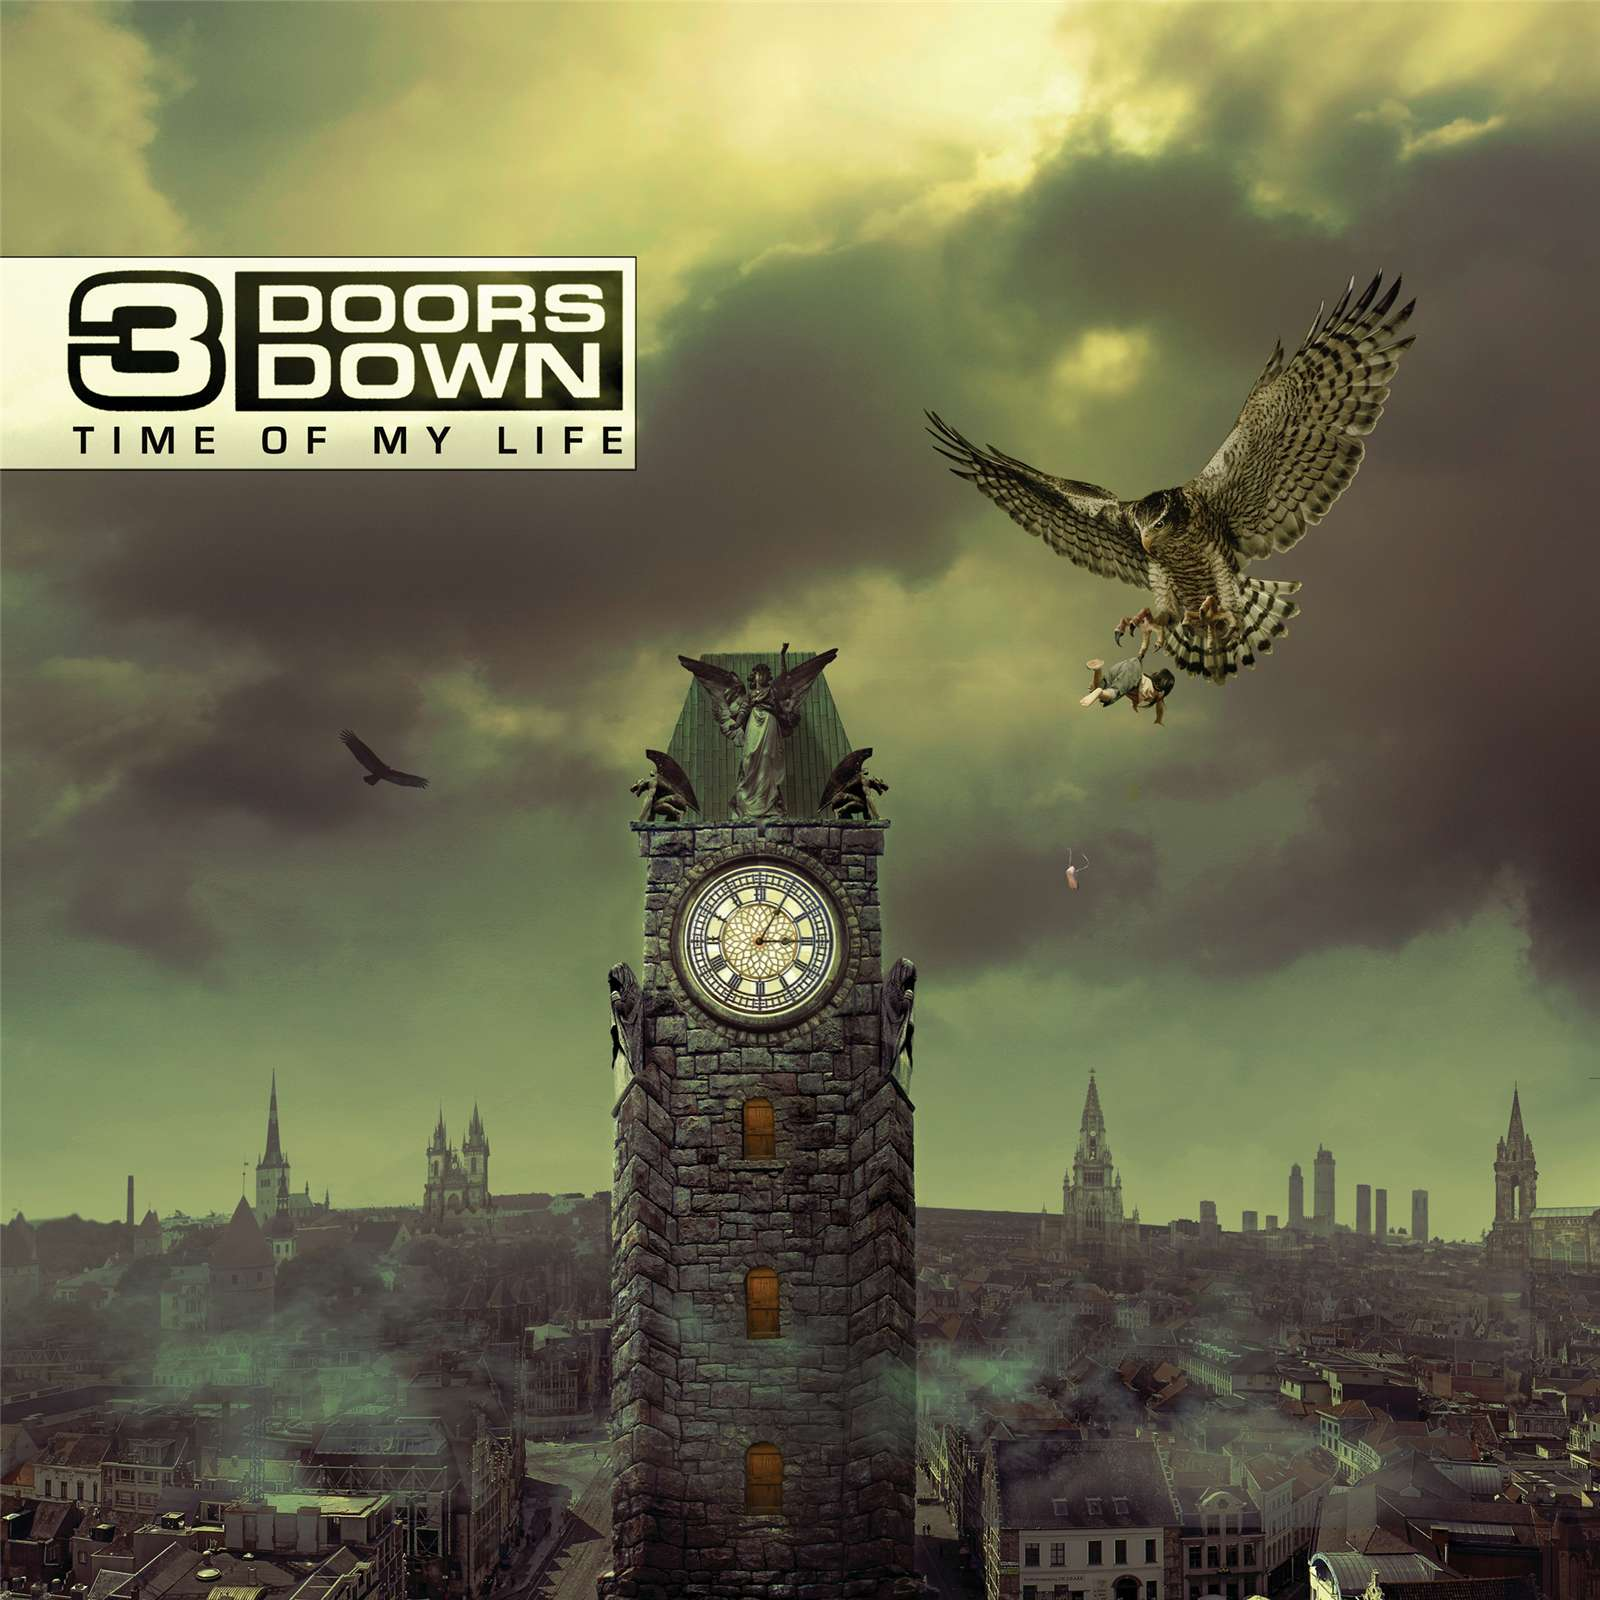 3 Doors Down: Time of my Life (2011) Book Cover